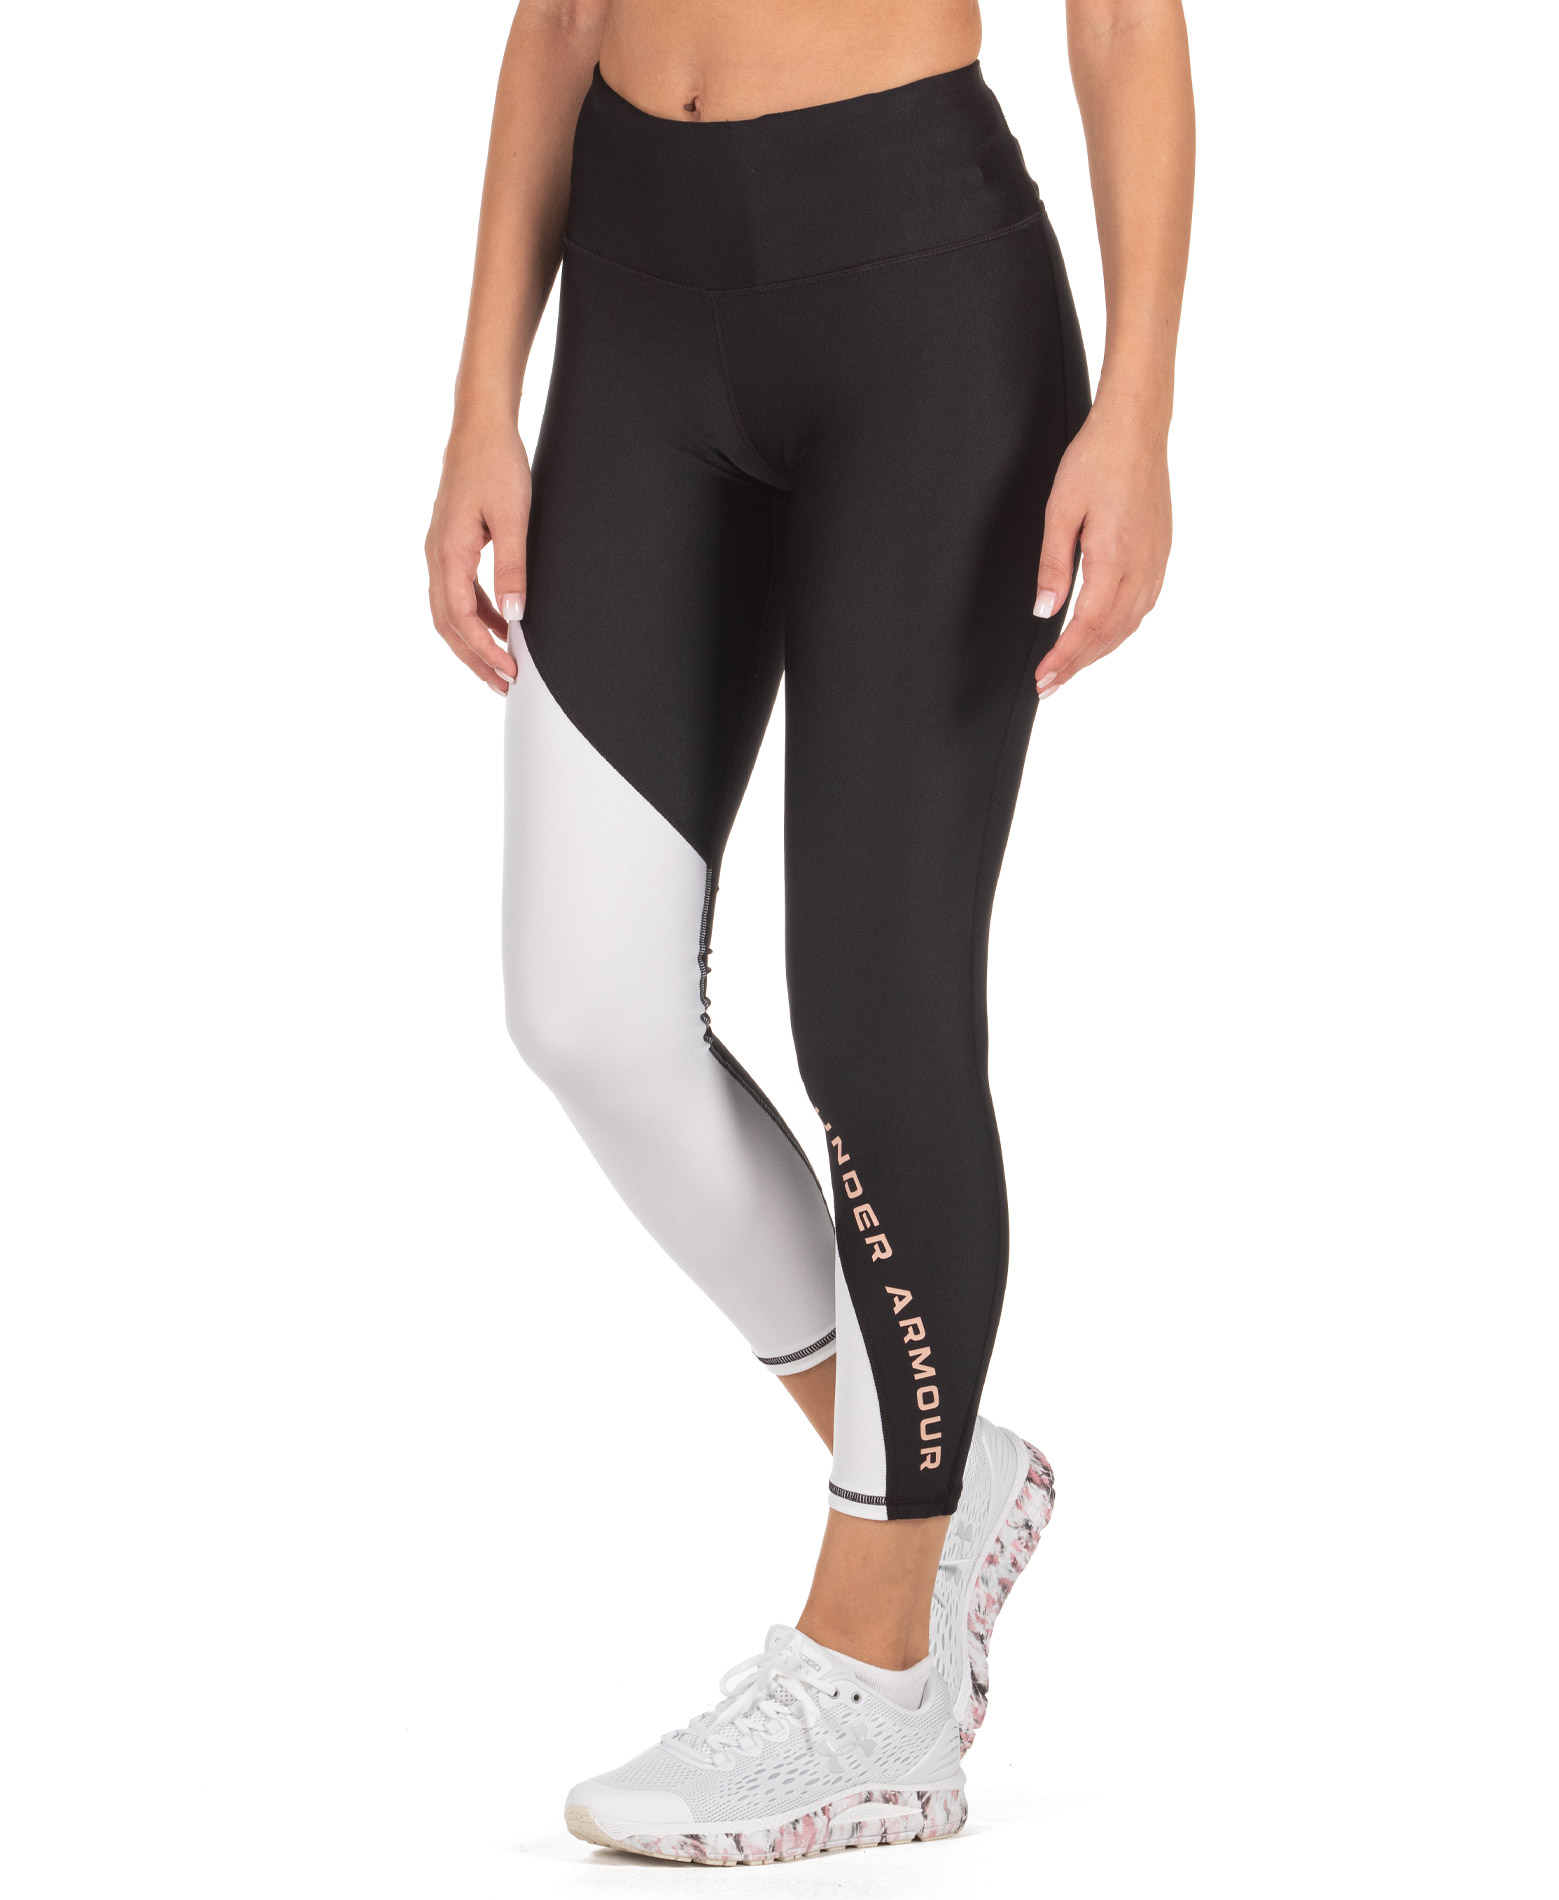 UNDER ARMOUR HG ACB ANKLE CROP 1356385-001 Λευκό-Μαυρο